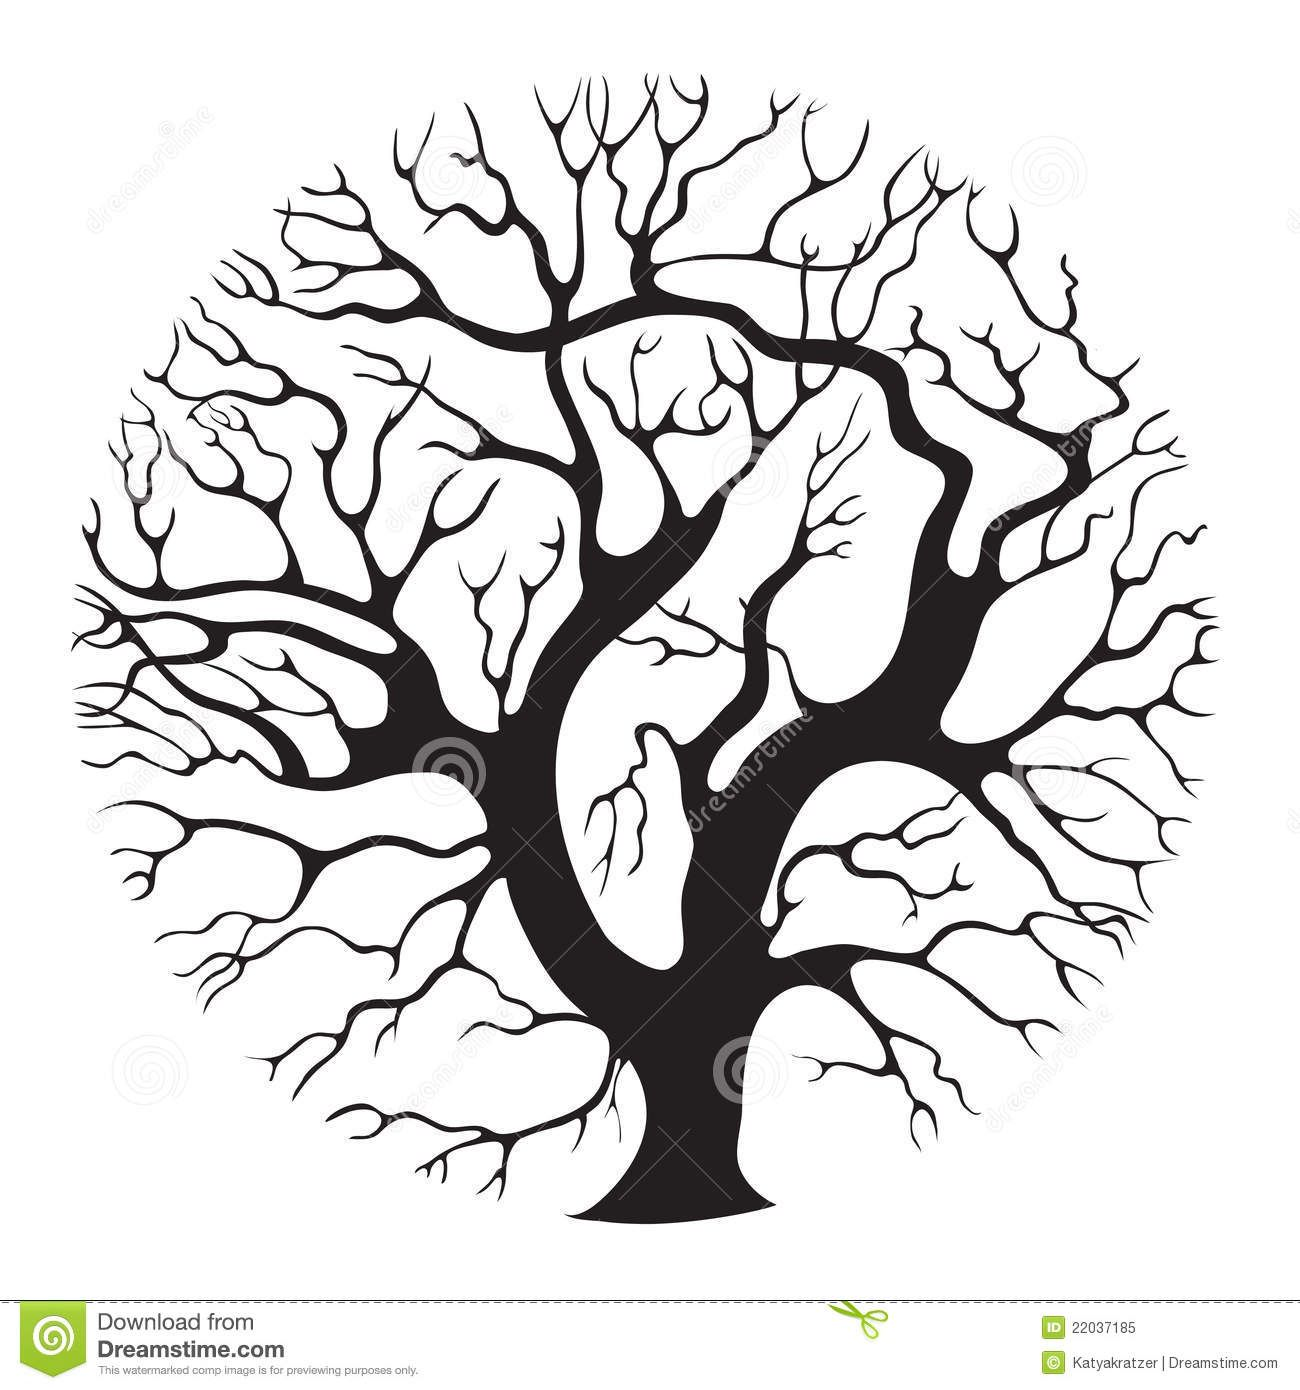 Treecircle Download From Over 54 Million High Quality